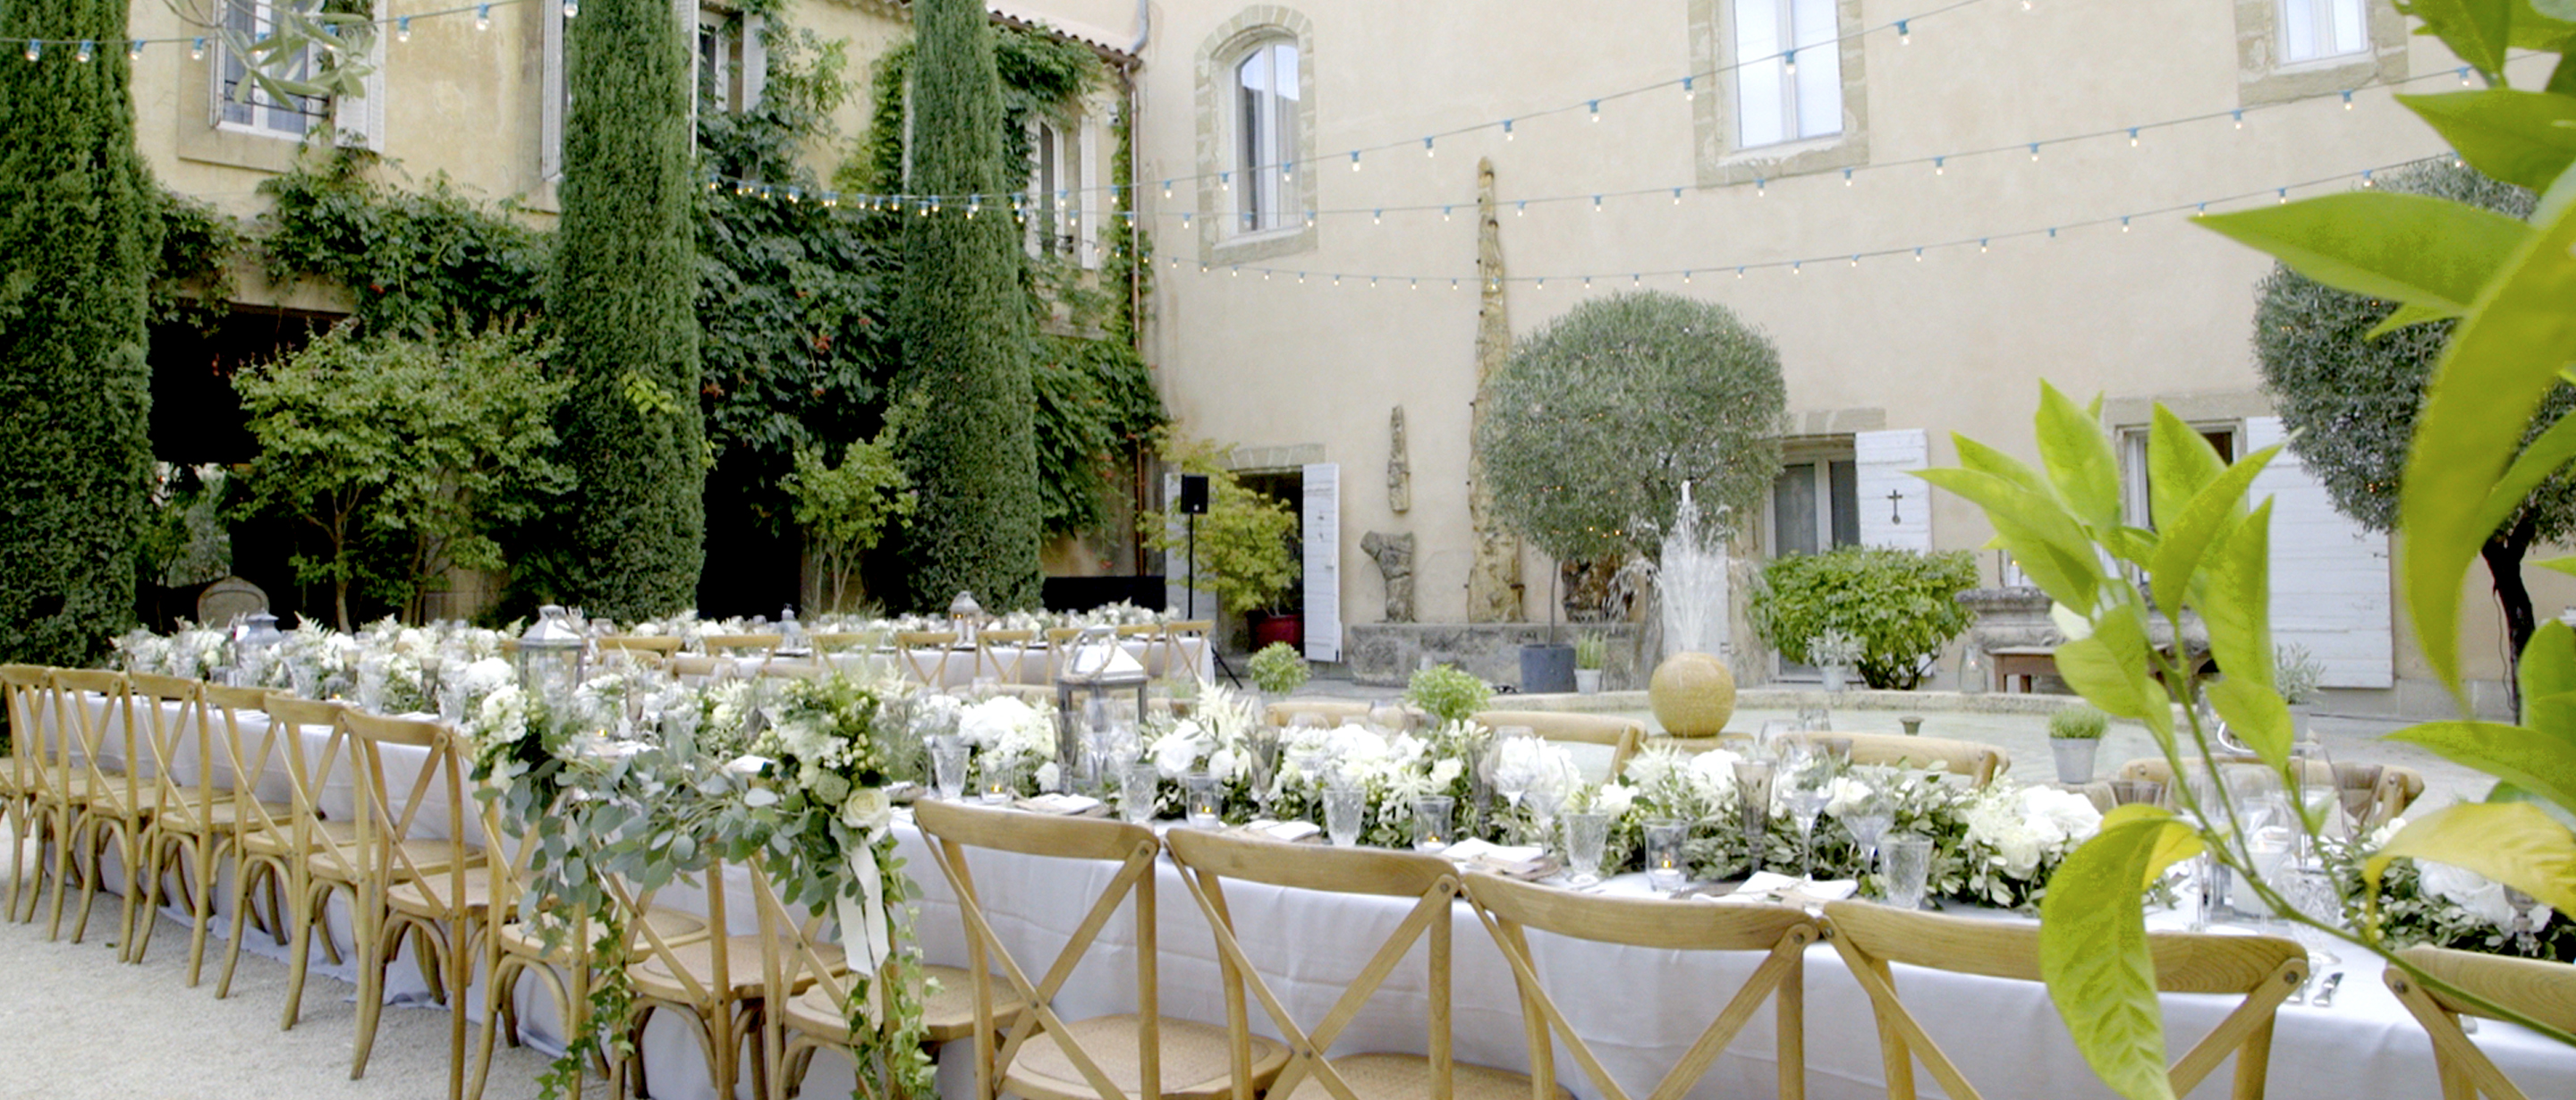 beautiful chateau de massillan wedding south of france wedding inspiration